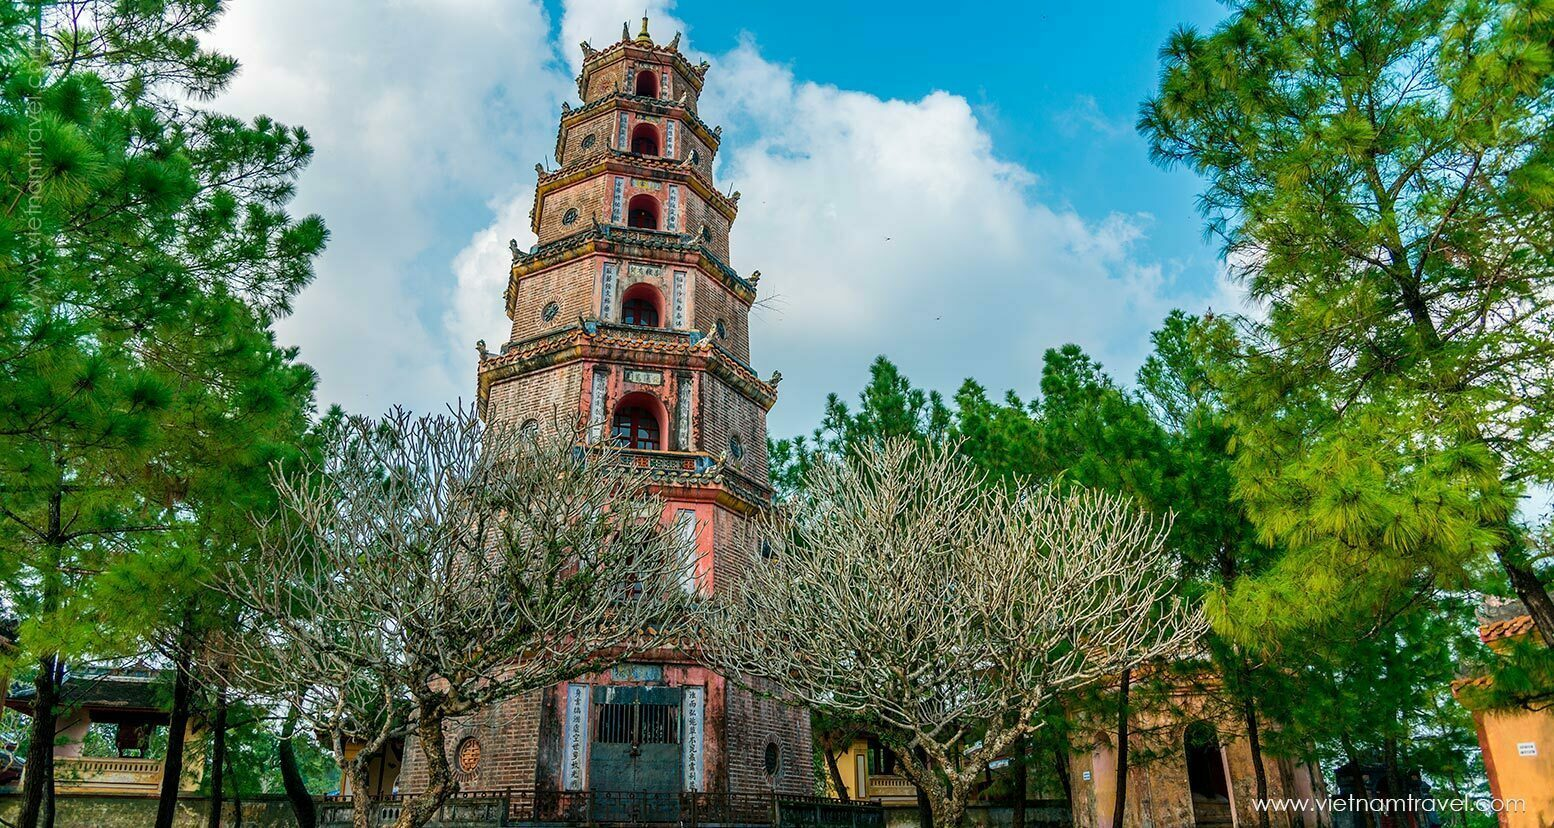 Bell tower in Thien Mu pagoda